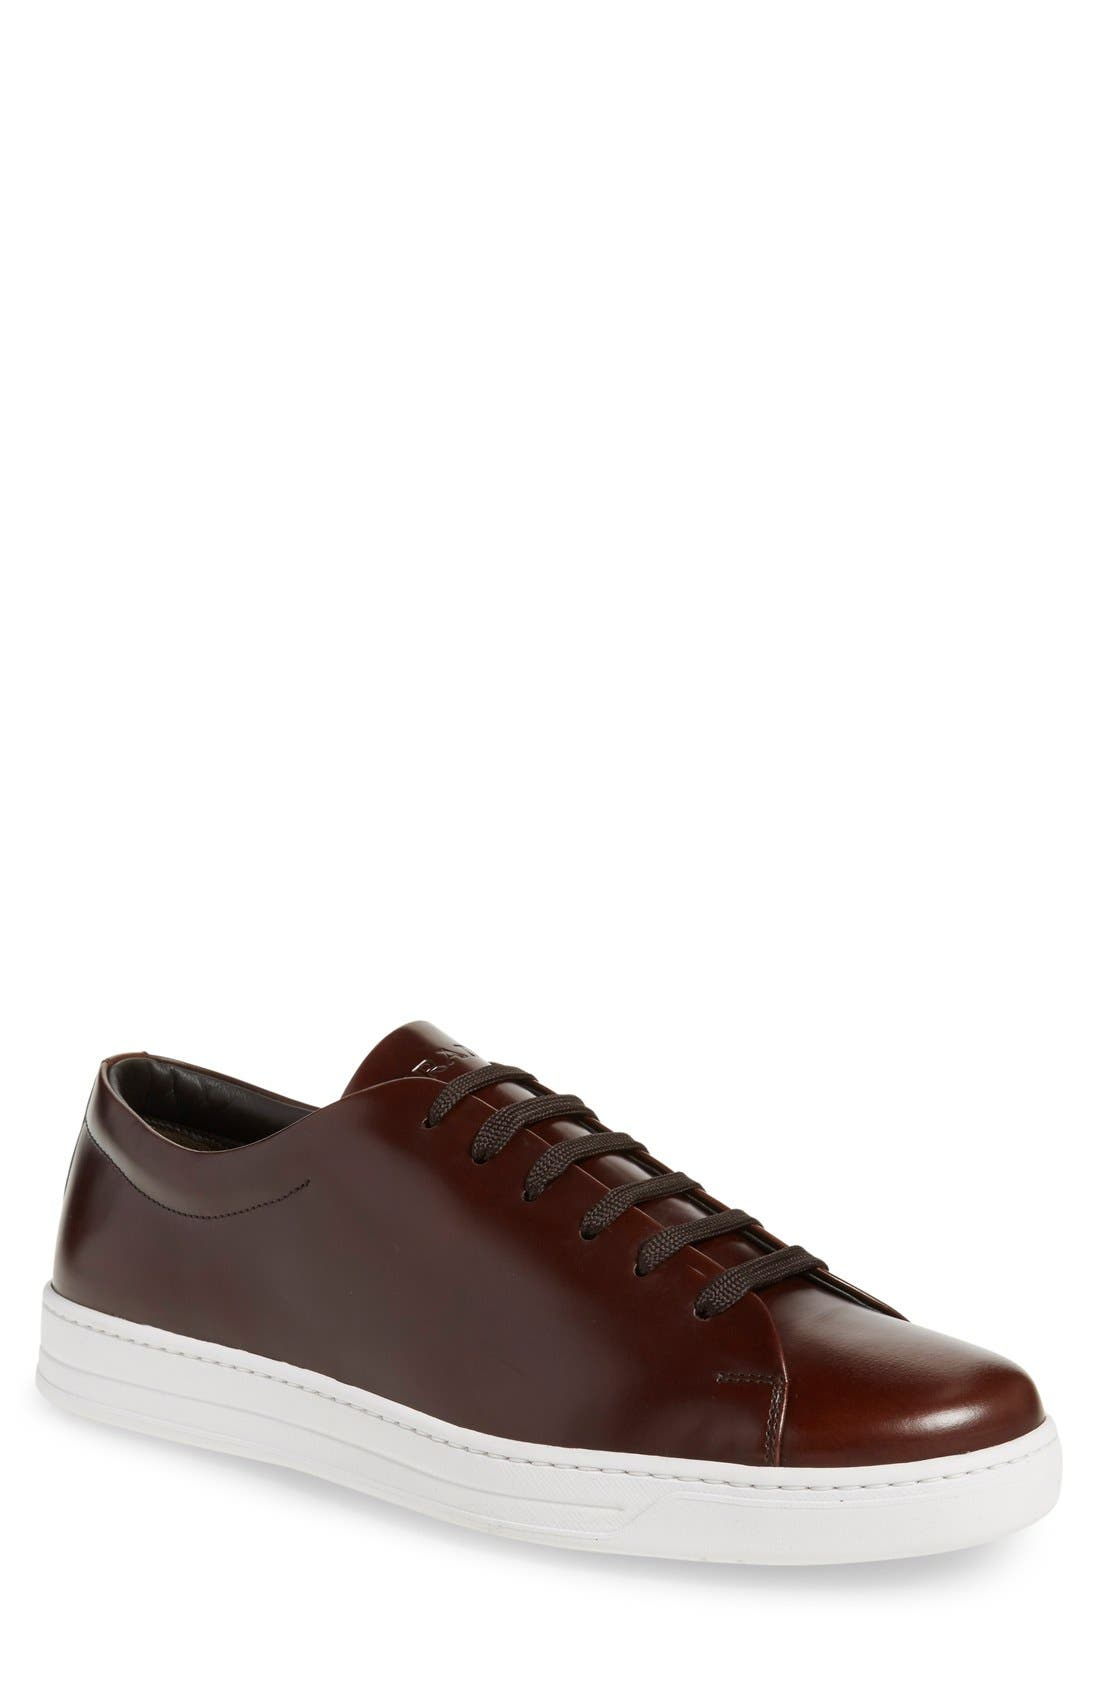 Prada Linea Rossa Low Top Sneaker (Men)